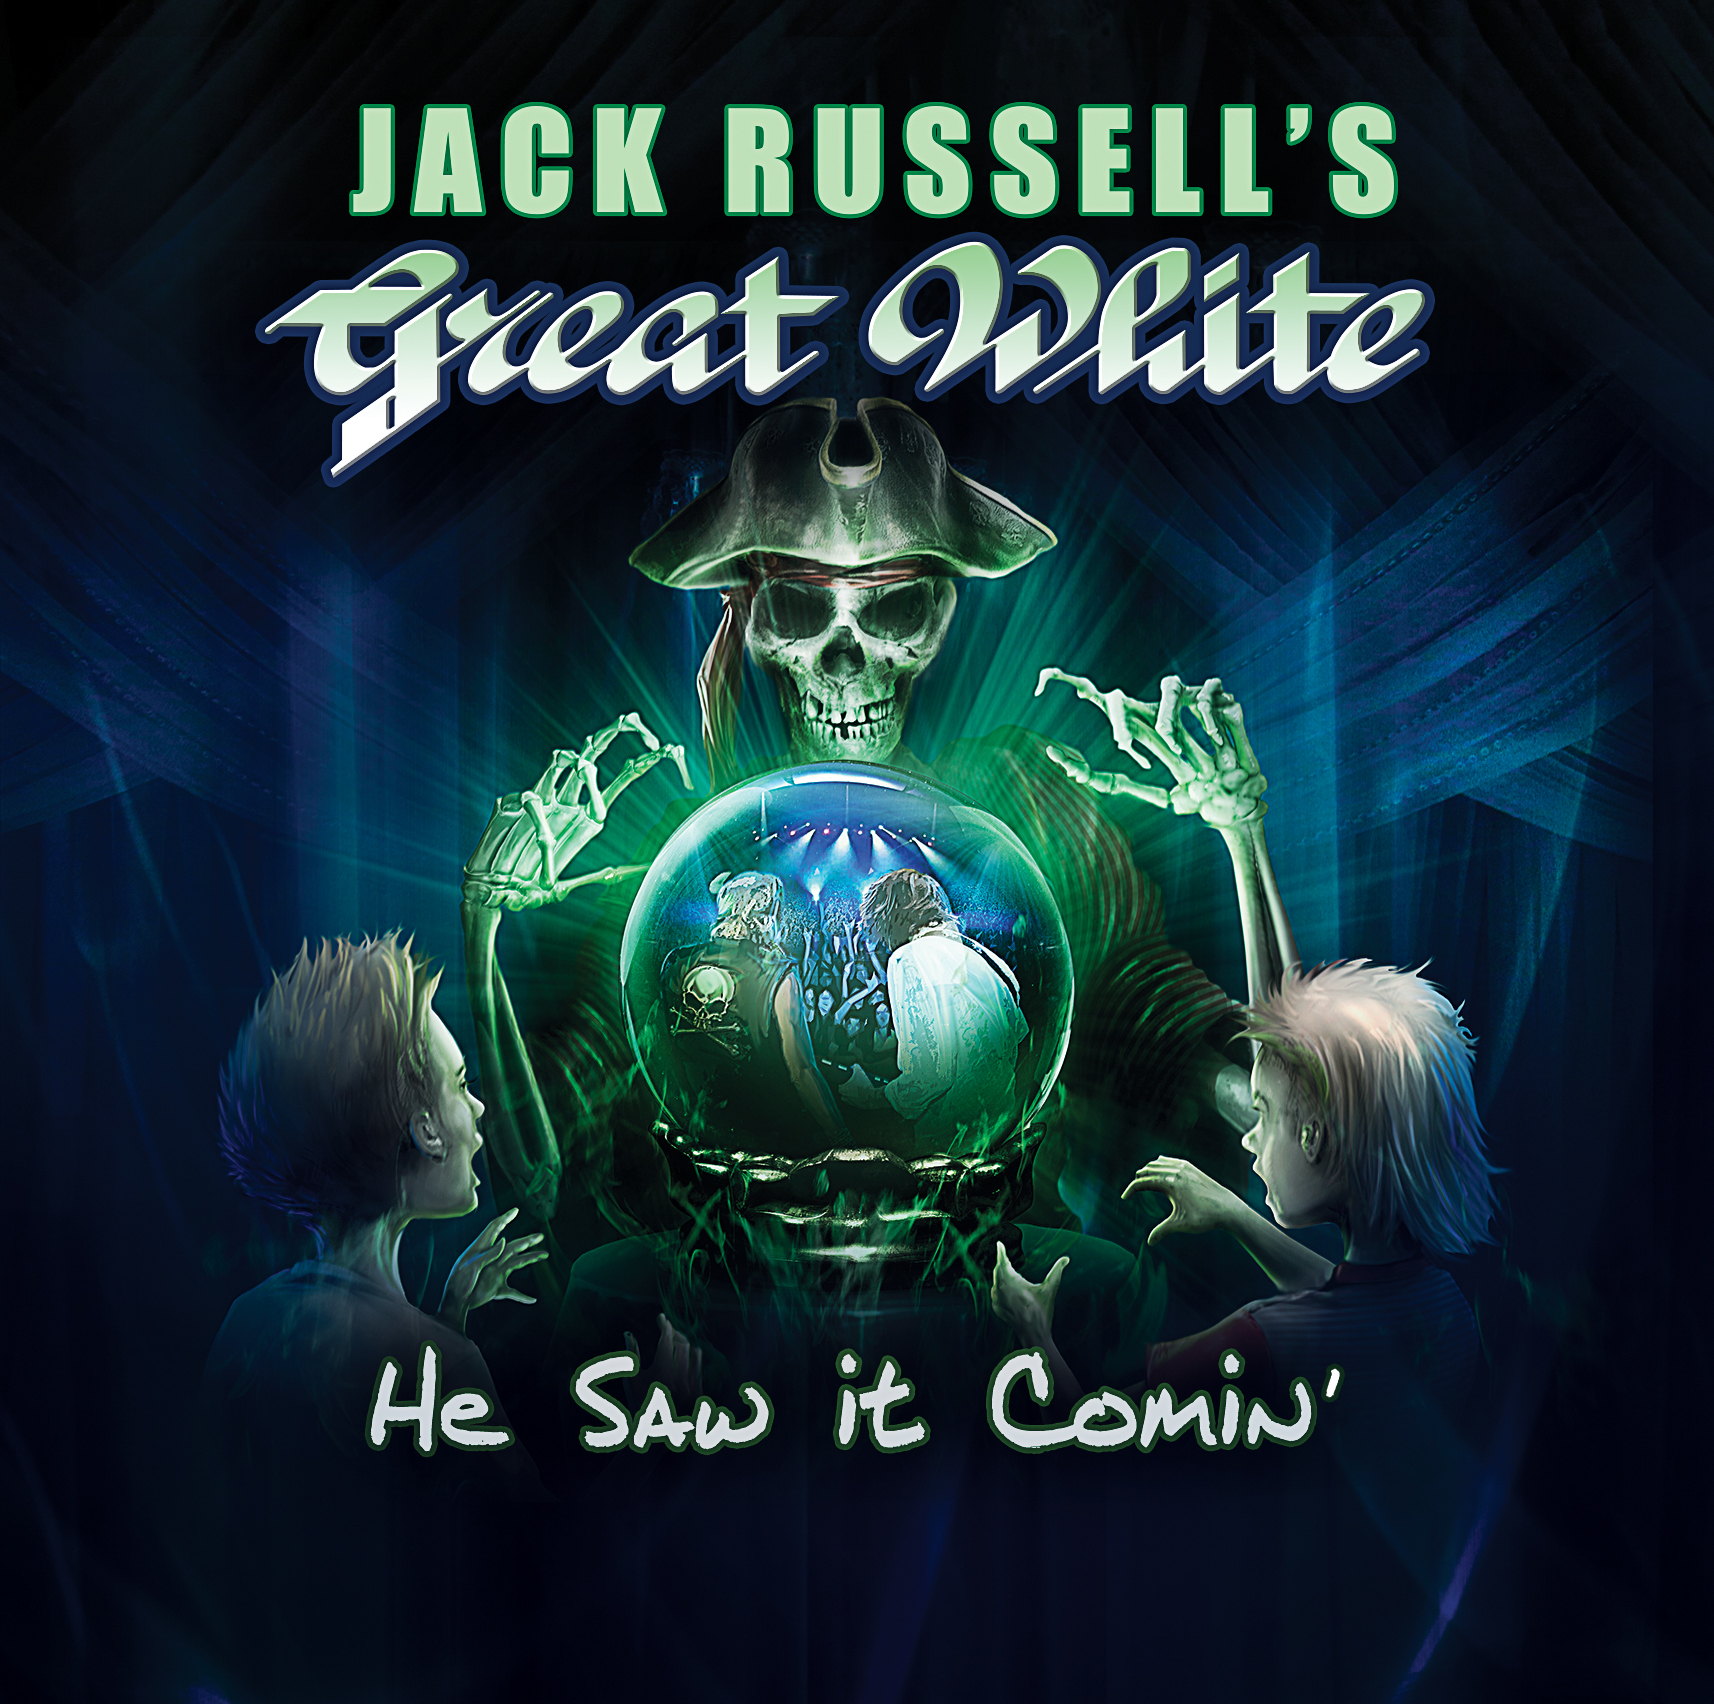 JACK RUSSELL'S GREAT WHITE hsic COVER HI